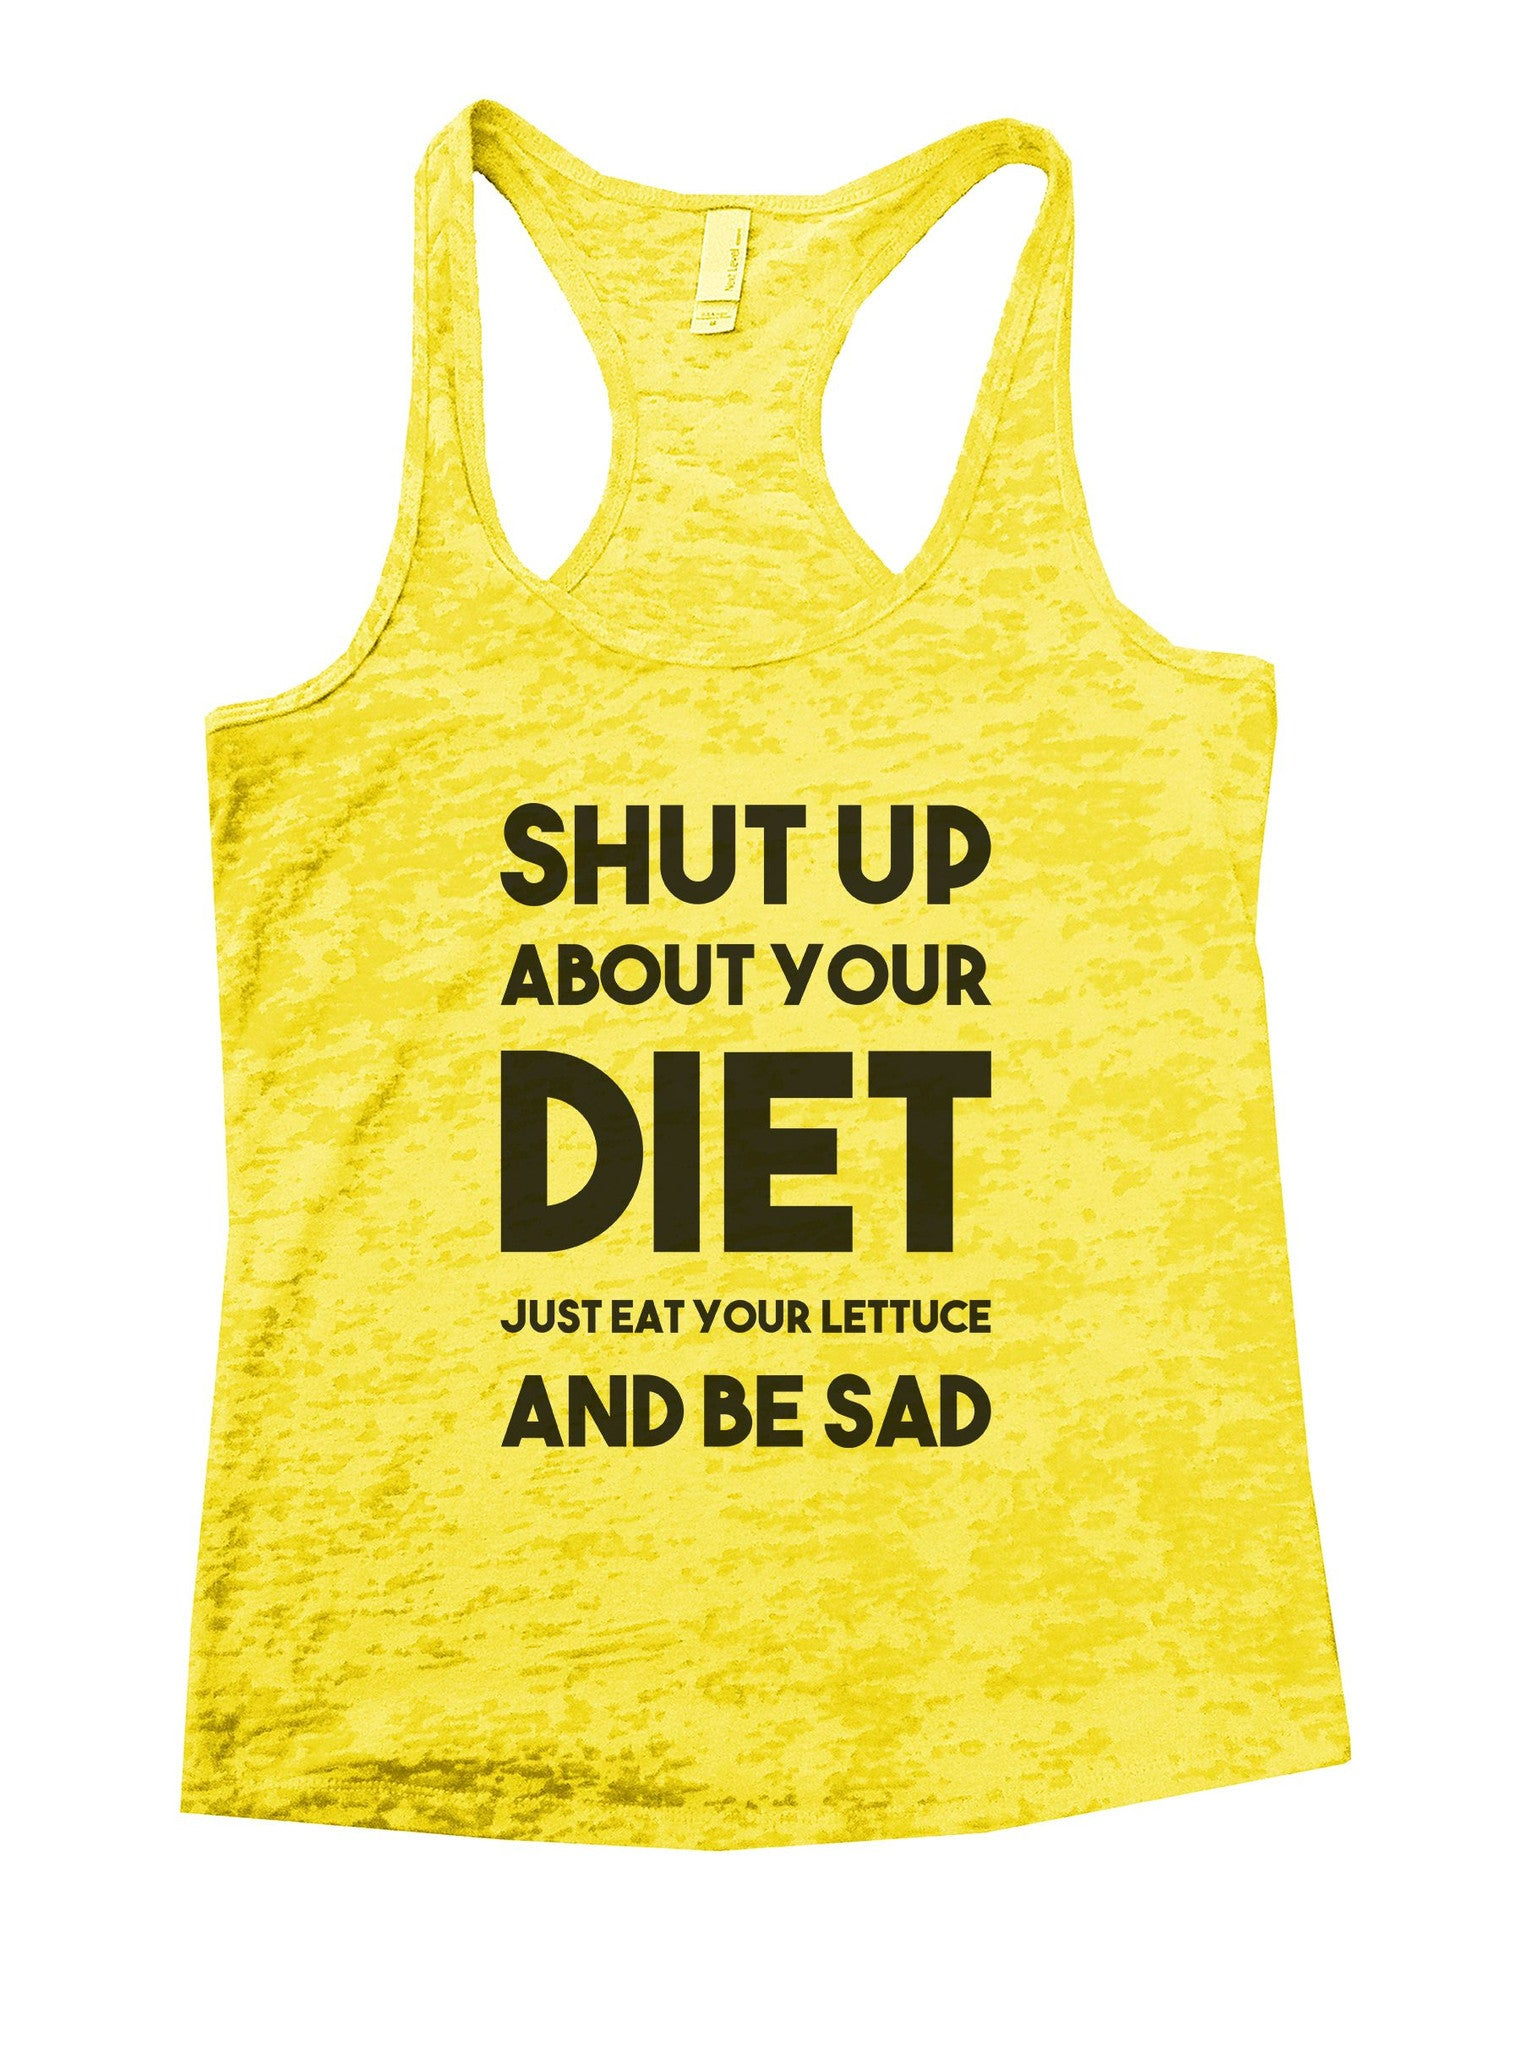 Shut Up About Your Diet Just Eat Your Lettuce And Be Sad Burnout Tank Top By BurnoutTankTops.com - 856 - Funny Shirts Tank Tops Burnouts and Triblends  - 7